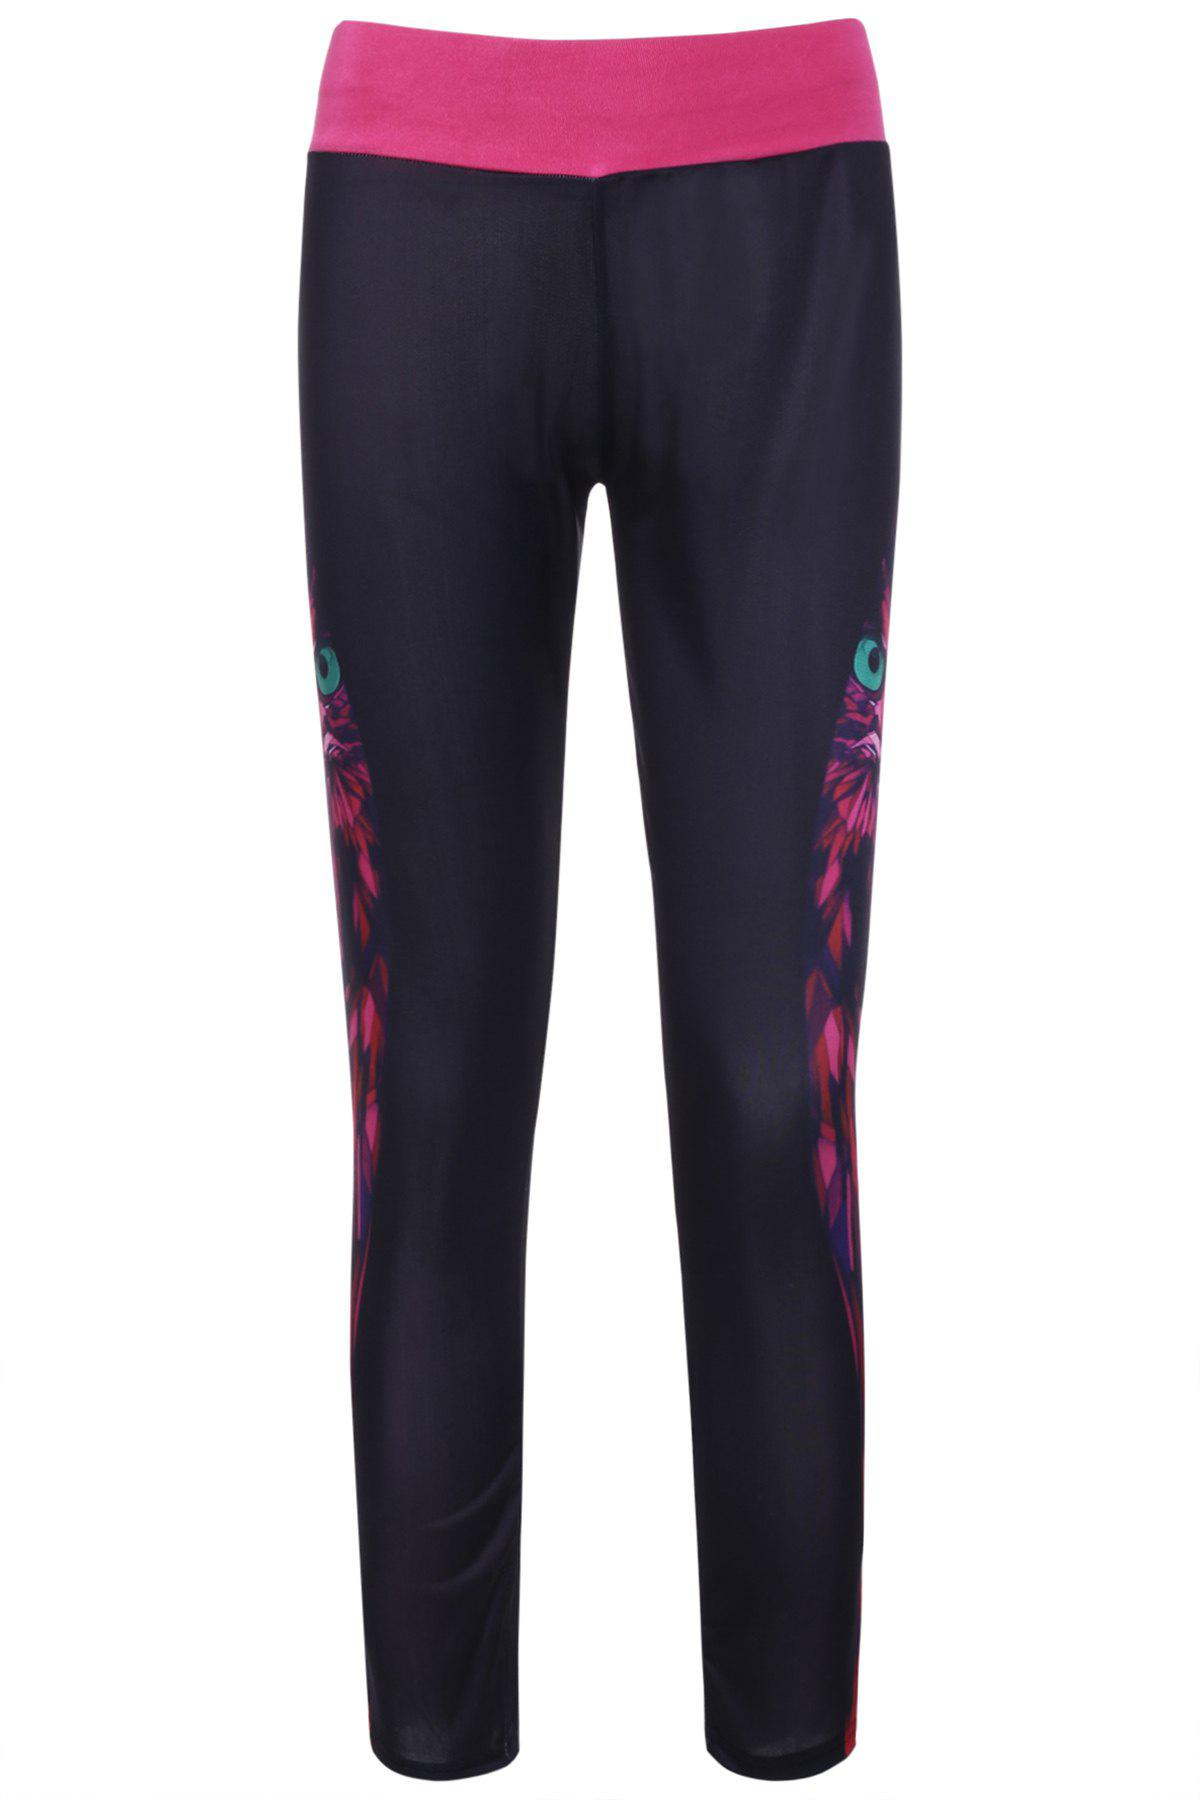 Women's Stylish Owl Print Color Block Elastic Stretchy Yoga Pants - COLORMIX ONE SIZE(FIT SIZE XS TO M)